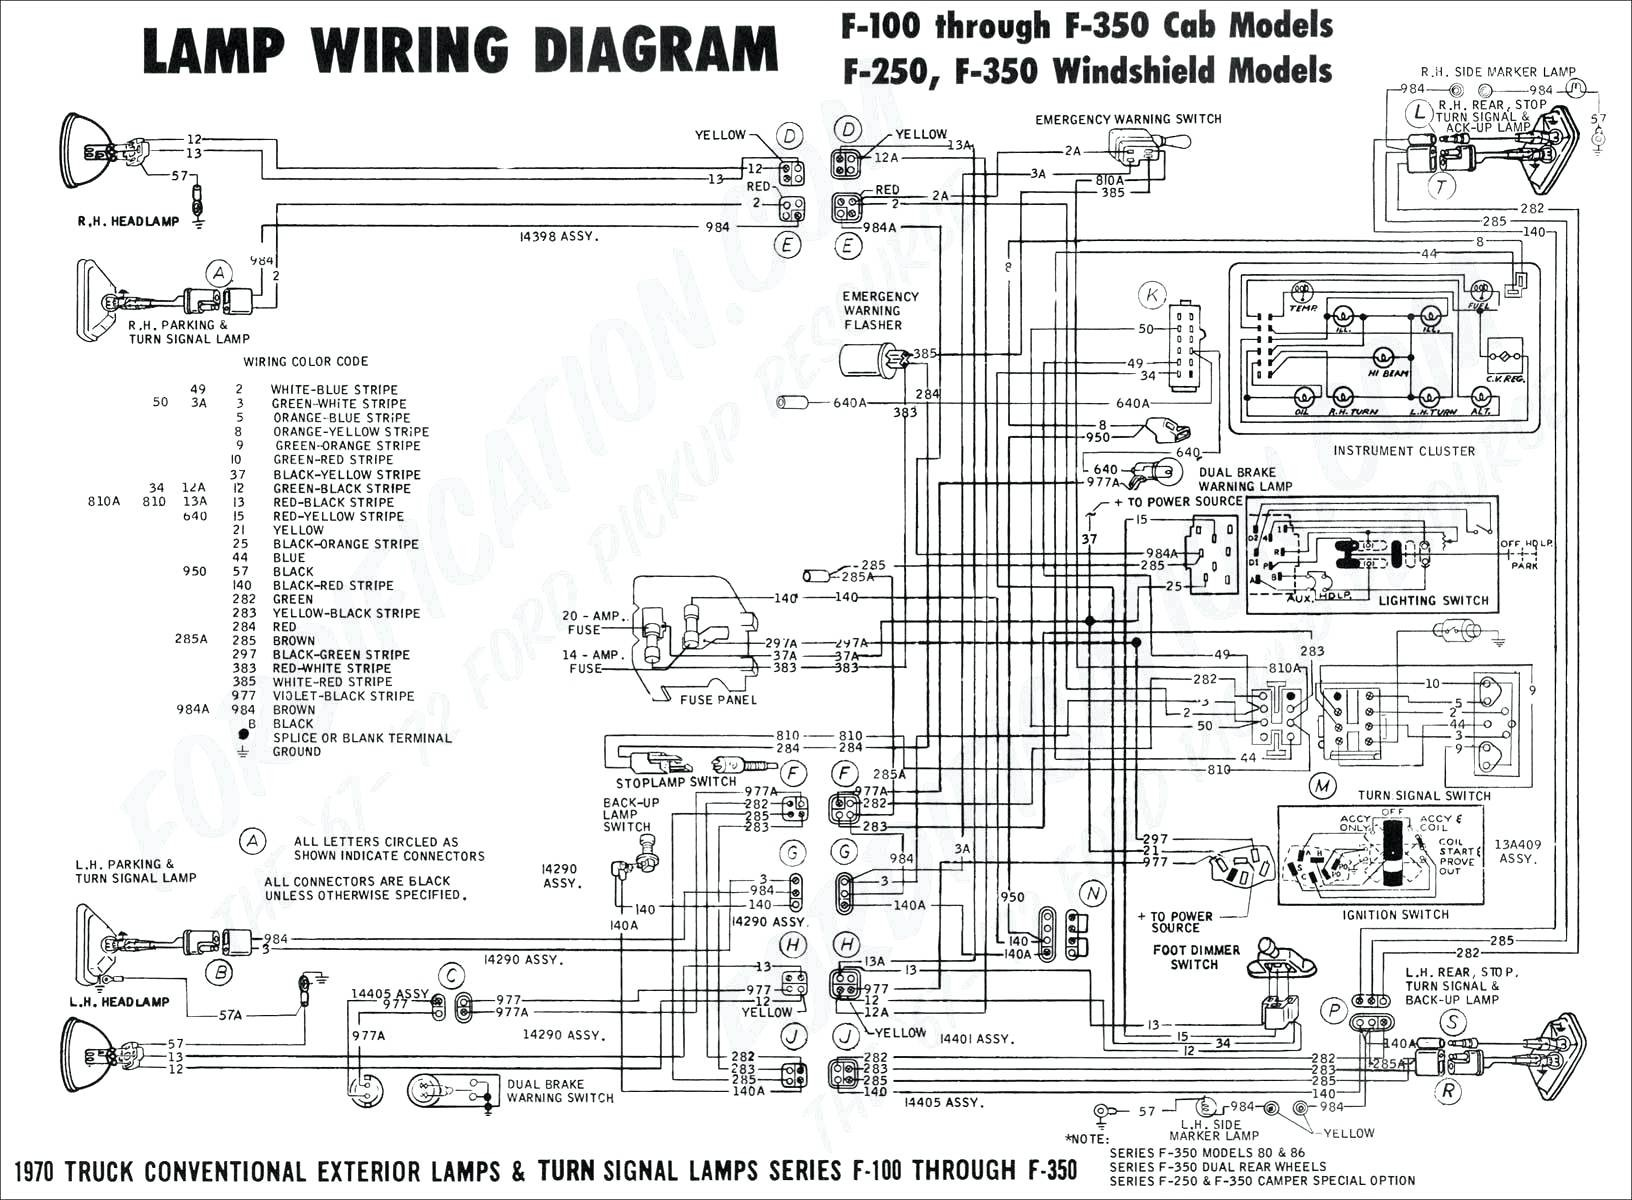 2007 toyota Tundra Parts Diagram Tundra Engine Diagram